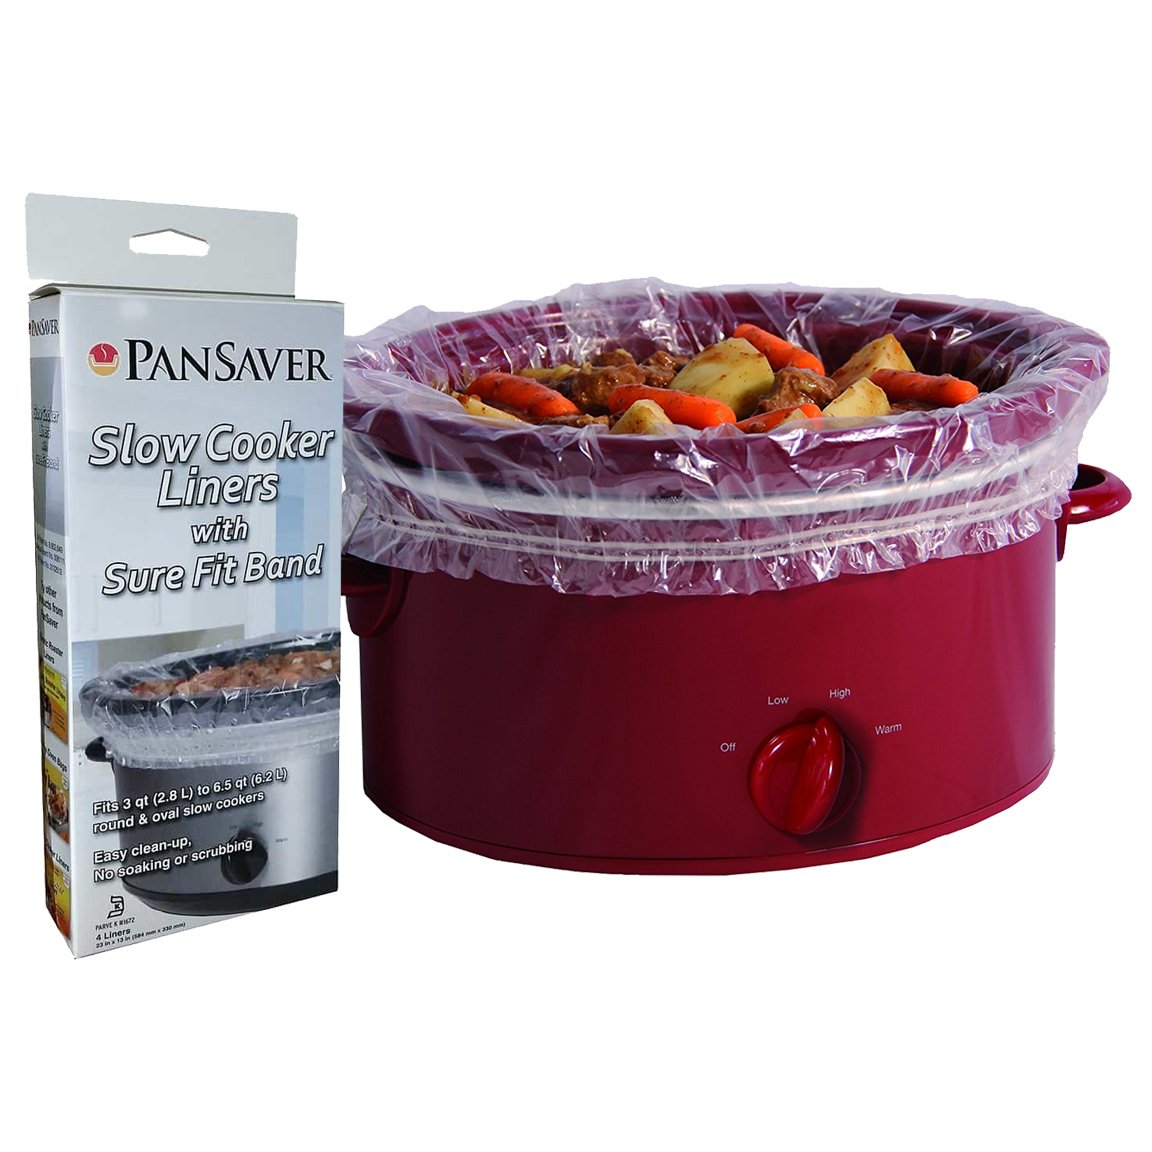 PanSaver 12 Pack Disposable Slow Cooker Liners Crockpot Liners Small Quart Cookers Liners with a Sure Fit Band - FDA certified, NSF approved, KOFK Certified Kosher by PanSaver